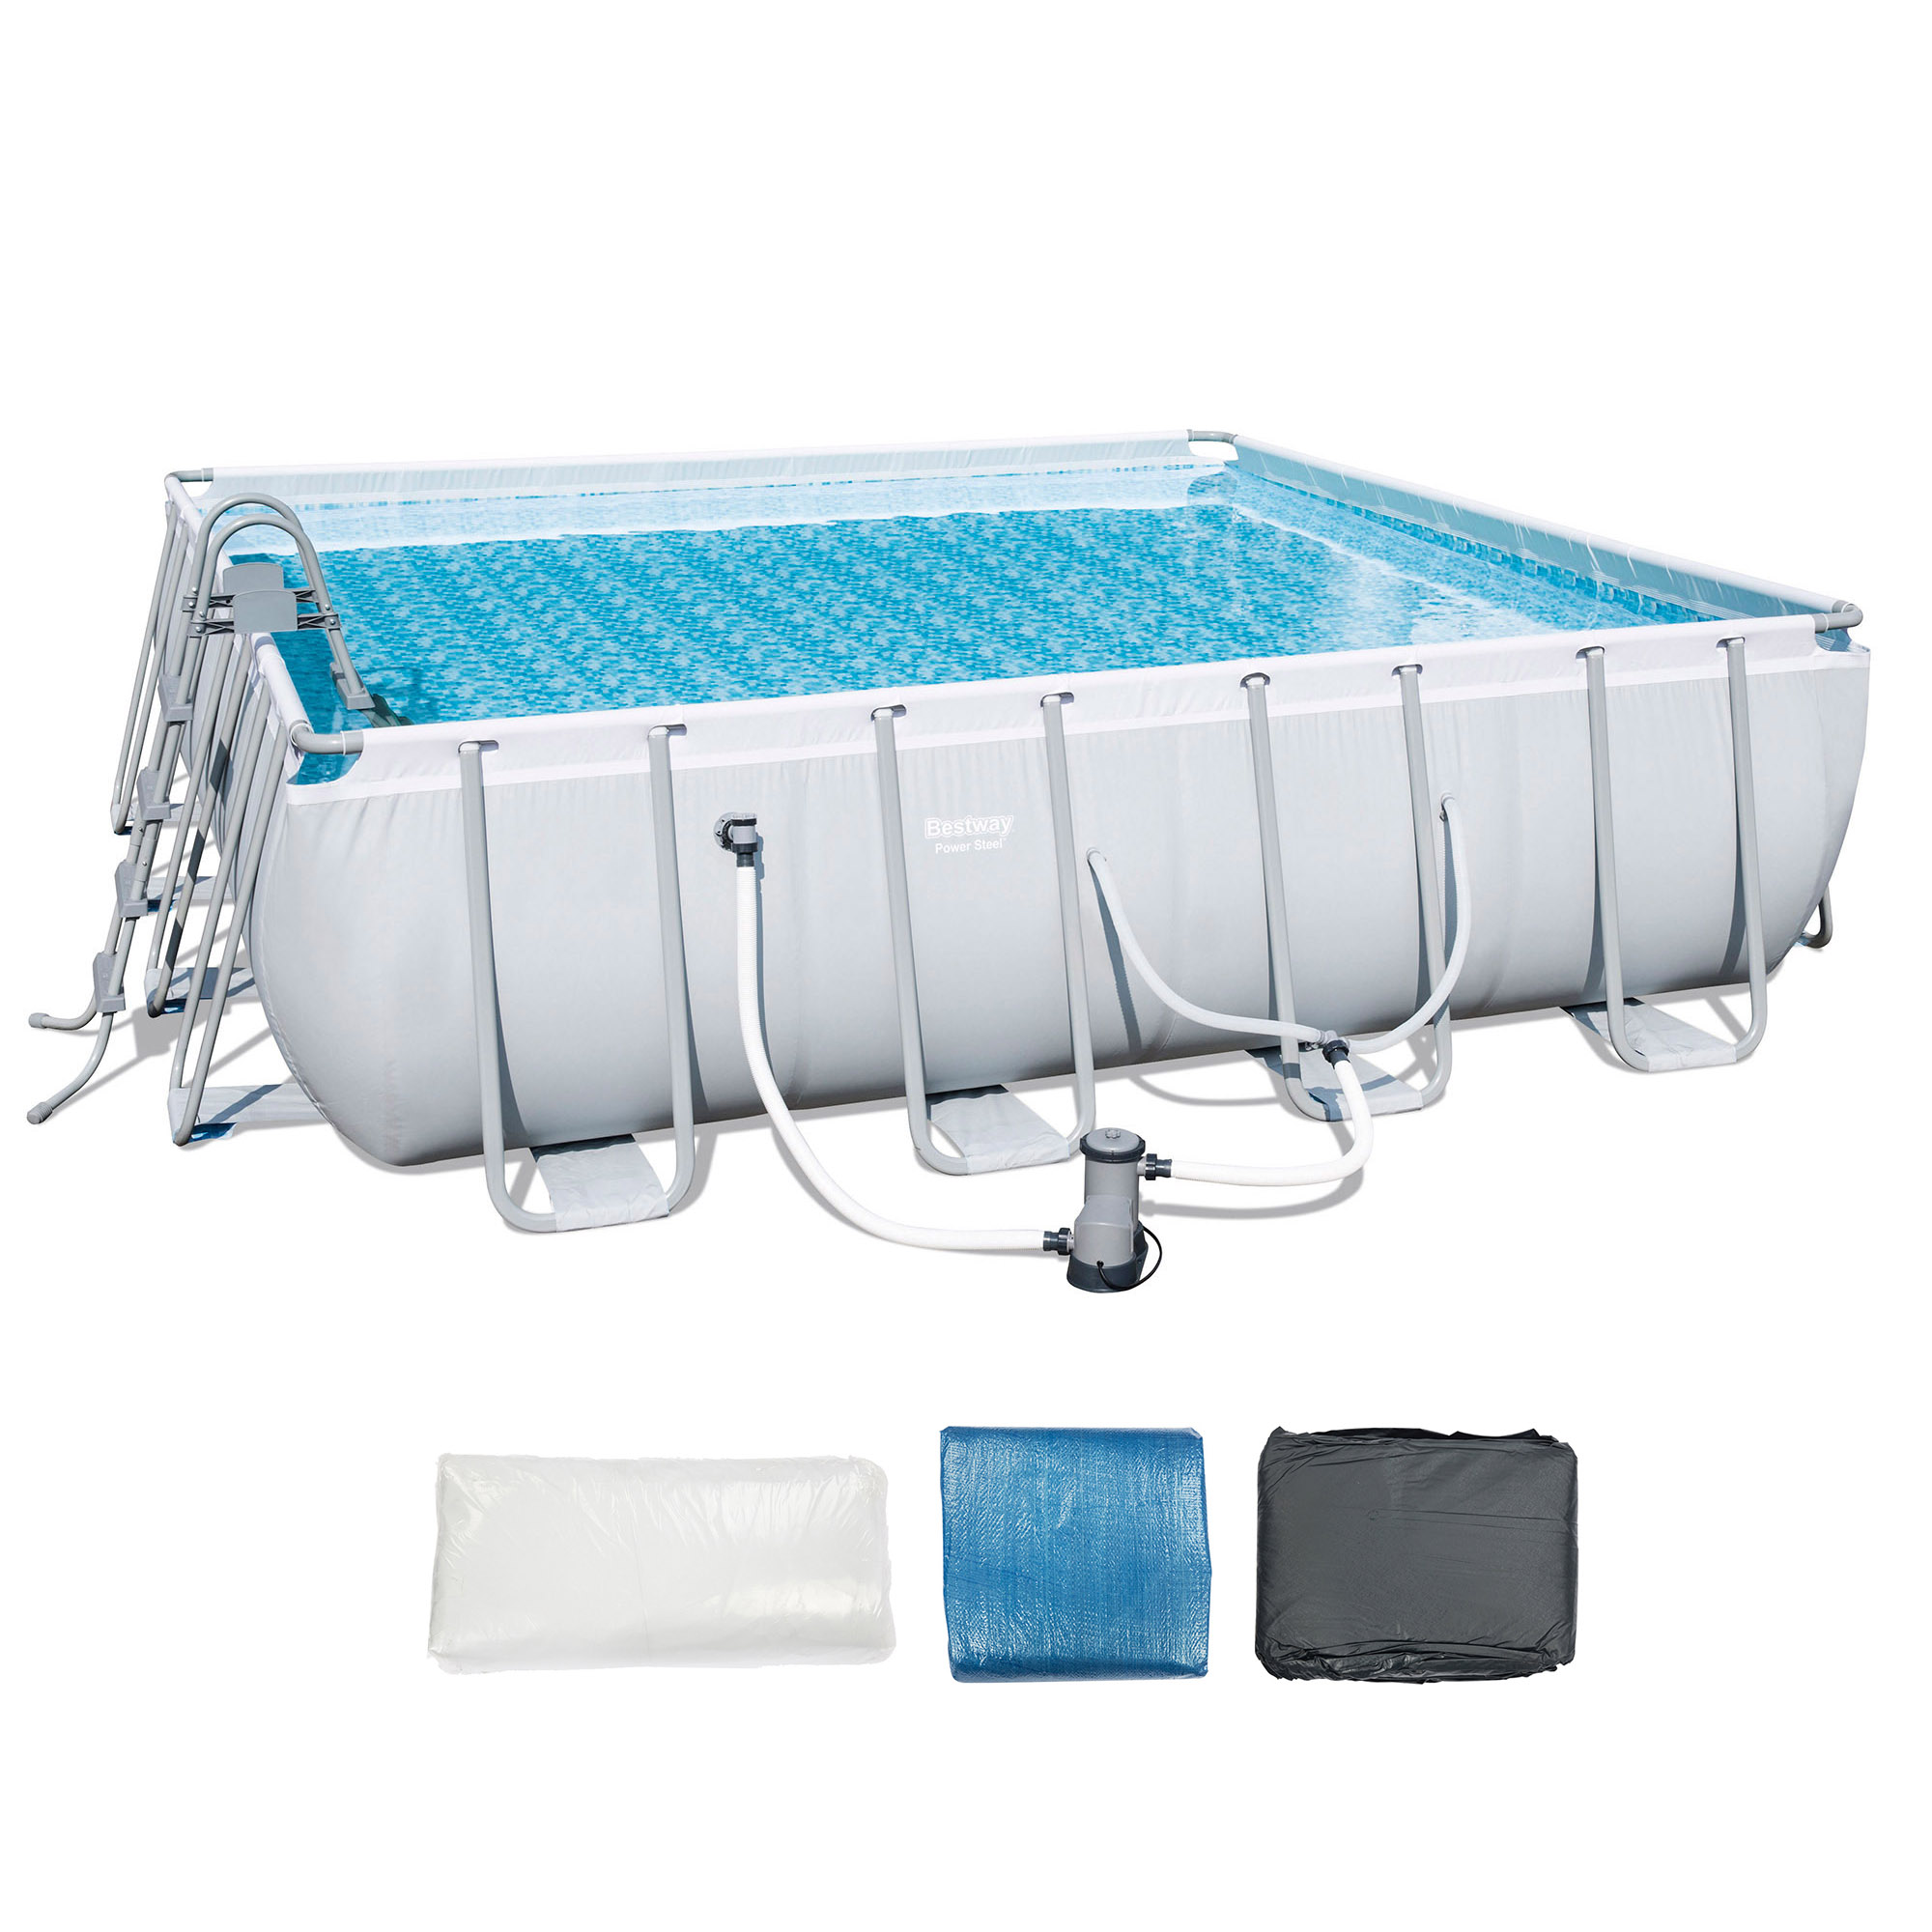 """Bestway 16' x 48"""" Square Frame Above Ground Pool Set with Ladder and Filter Pump by Bestway"""